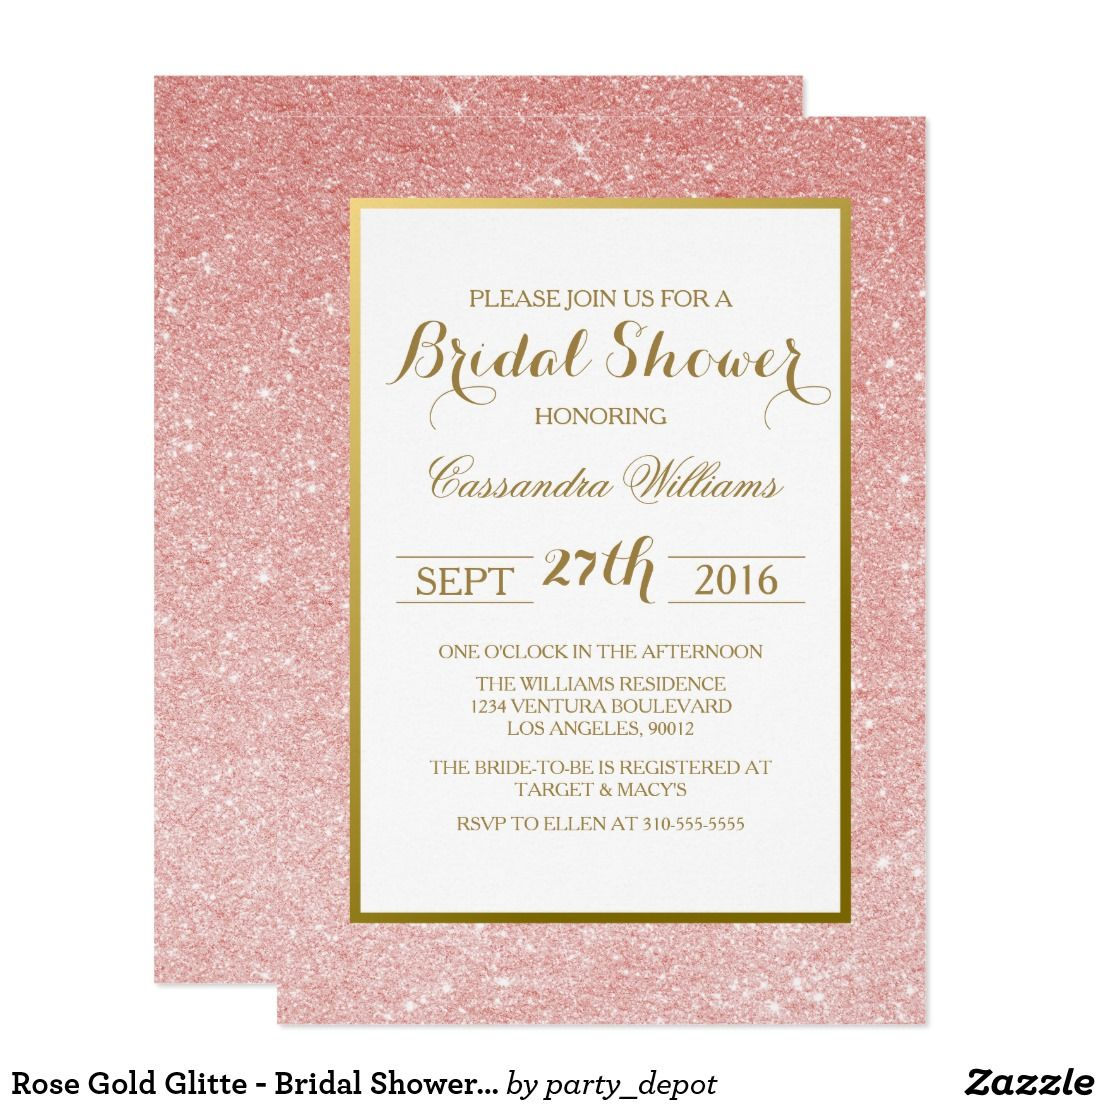 Rose Gold Glitte - Bridal Shower Invitation | Bridal showers, Shower ...